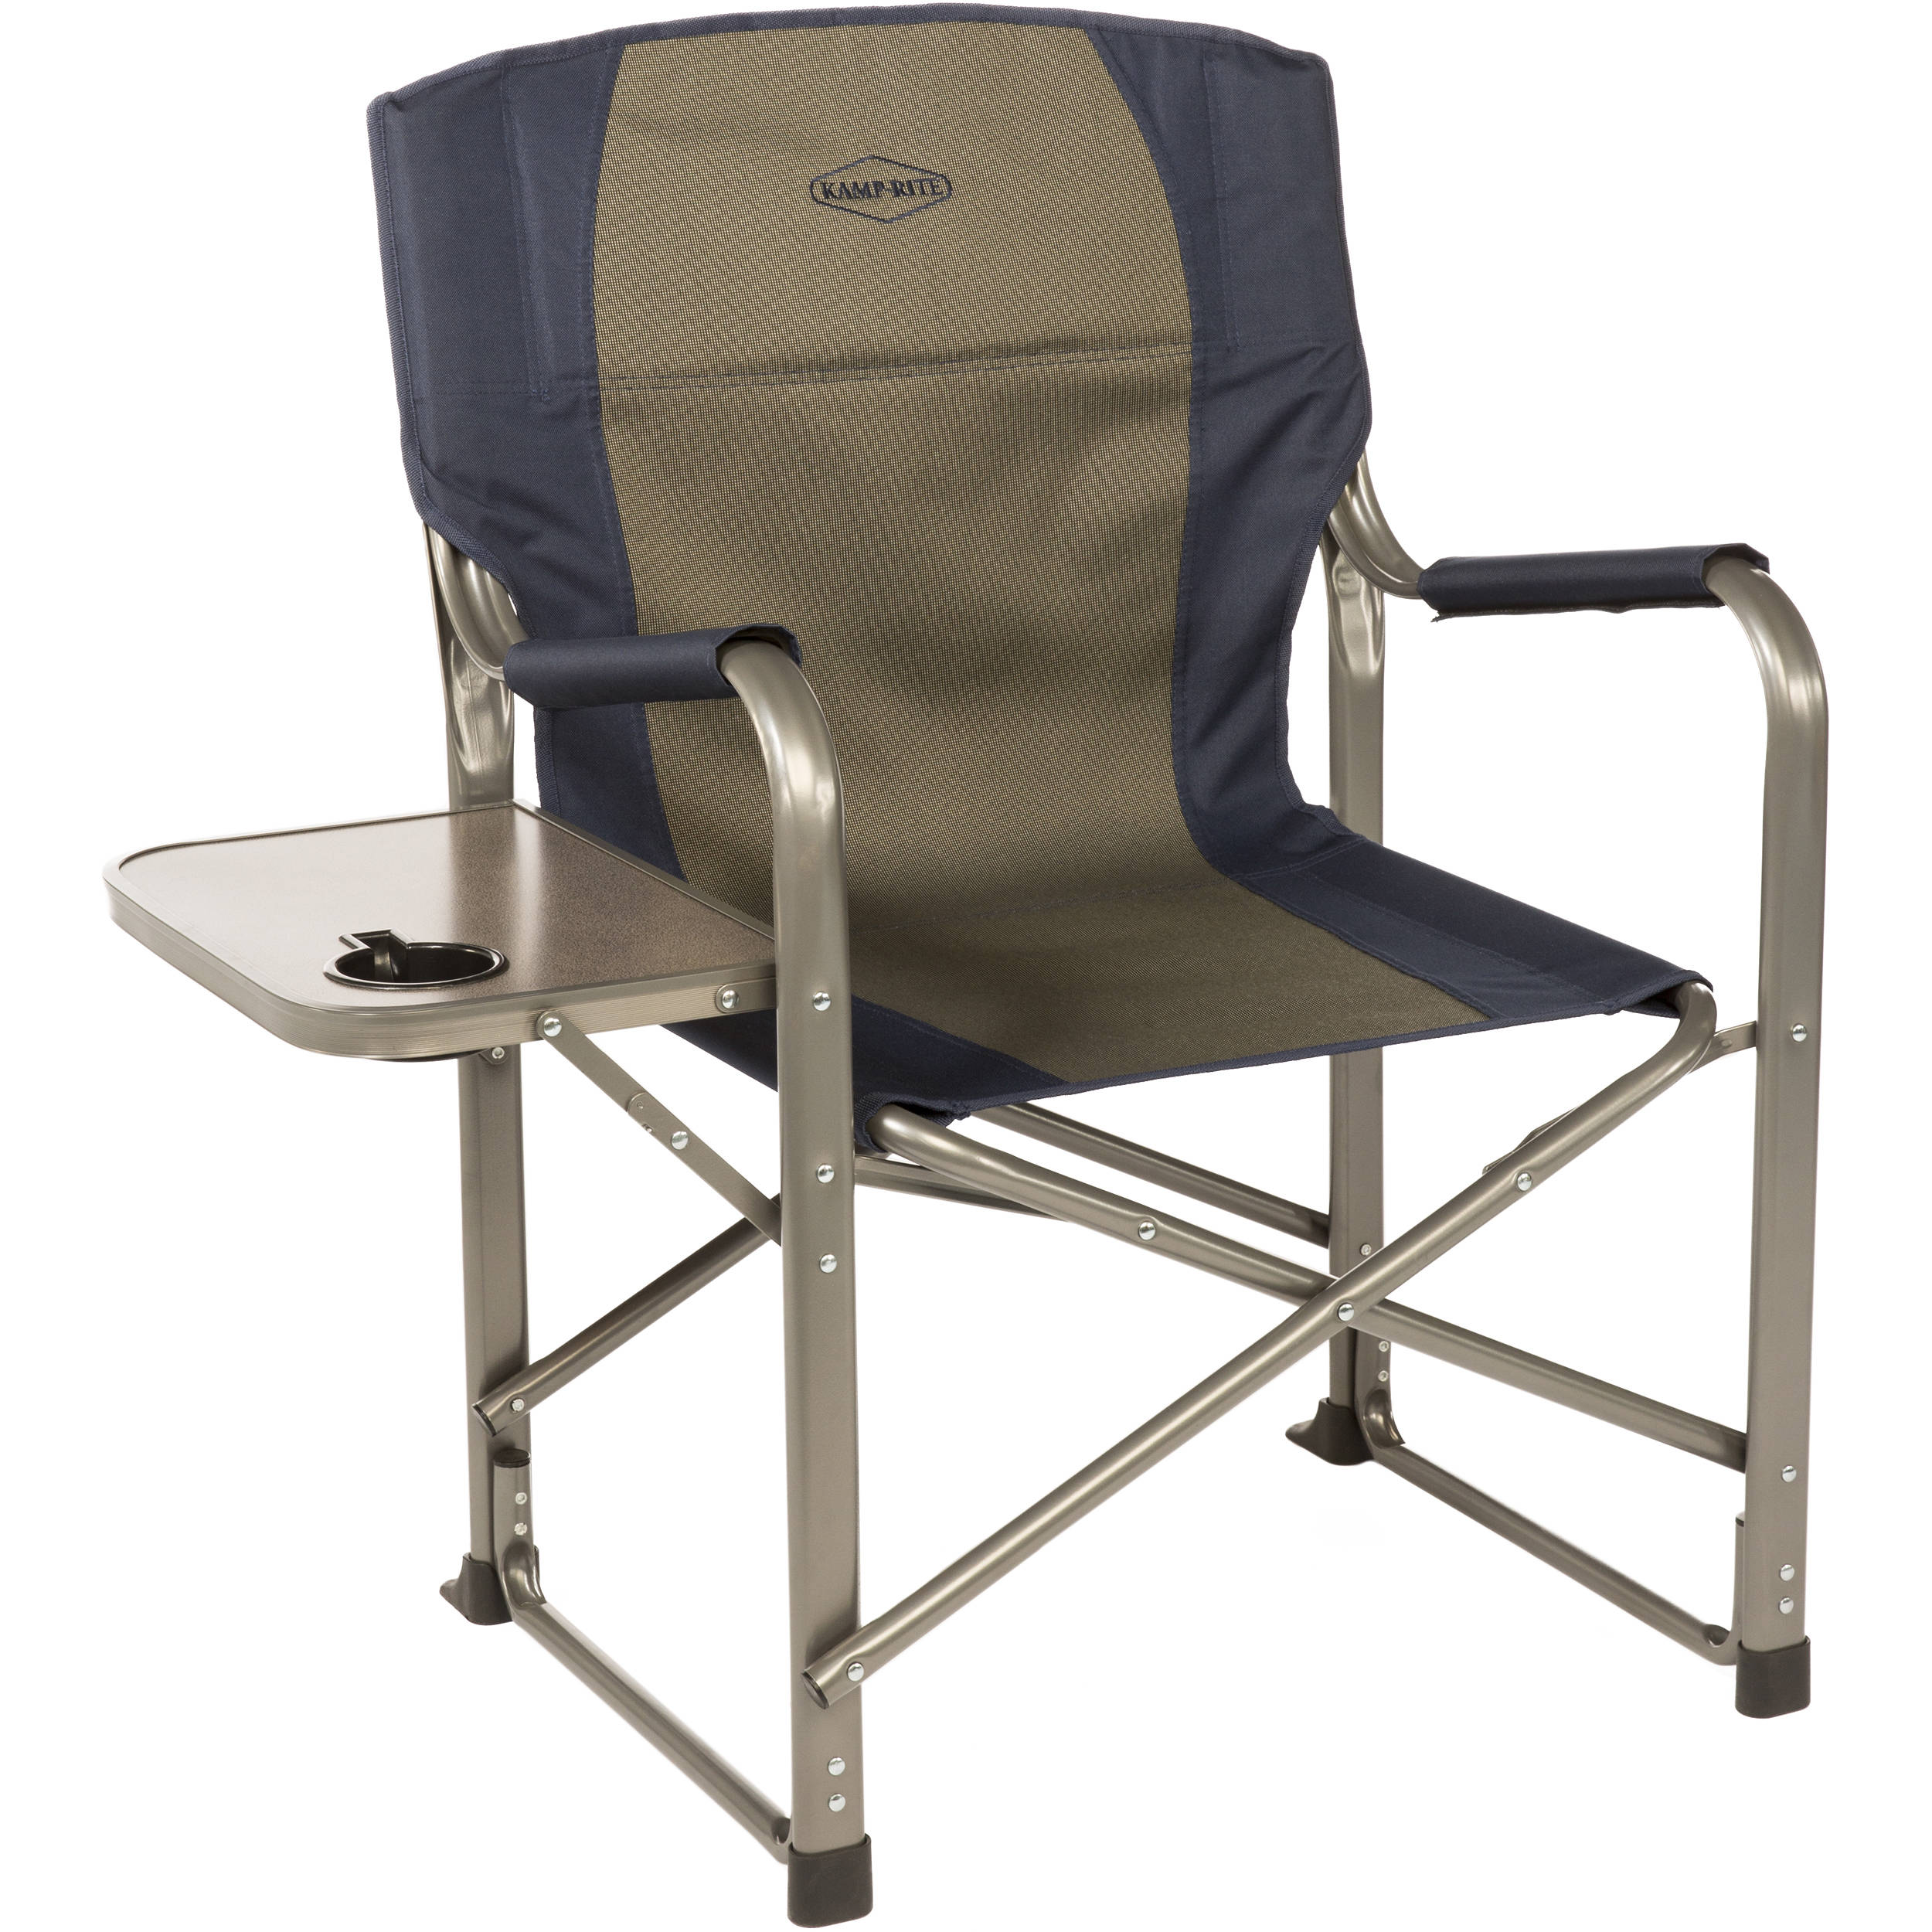 Folding Directors Chair With Side Table.Kamp Rite Folding Director S Chair With Side Table